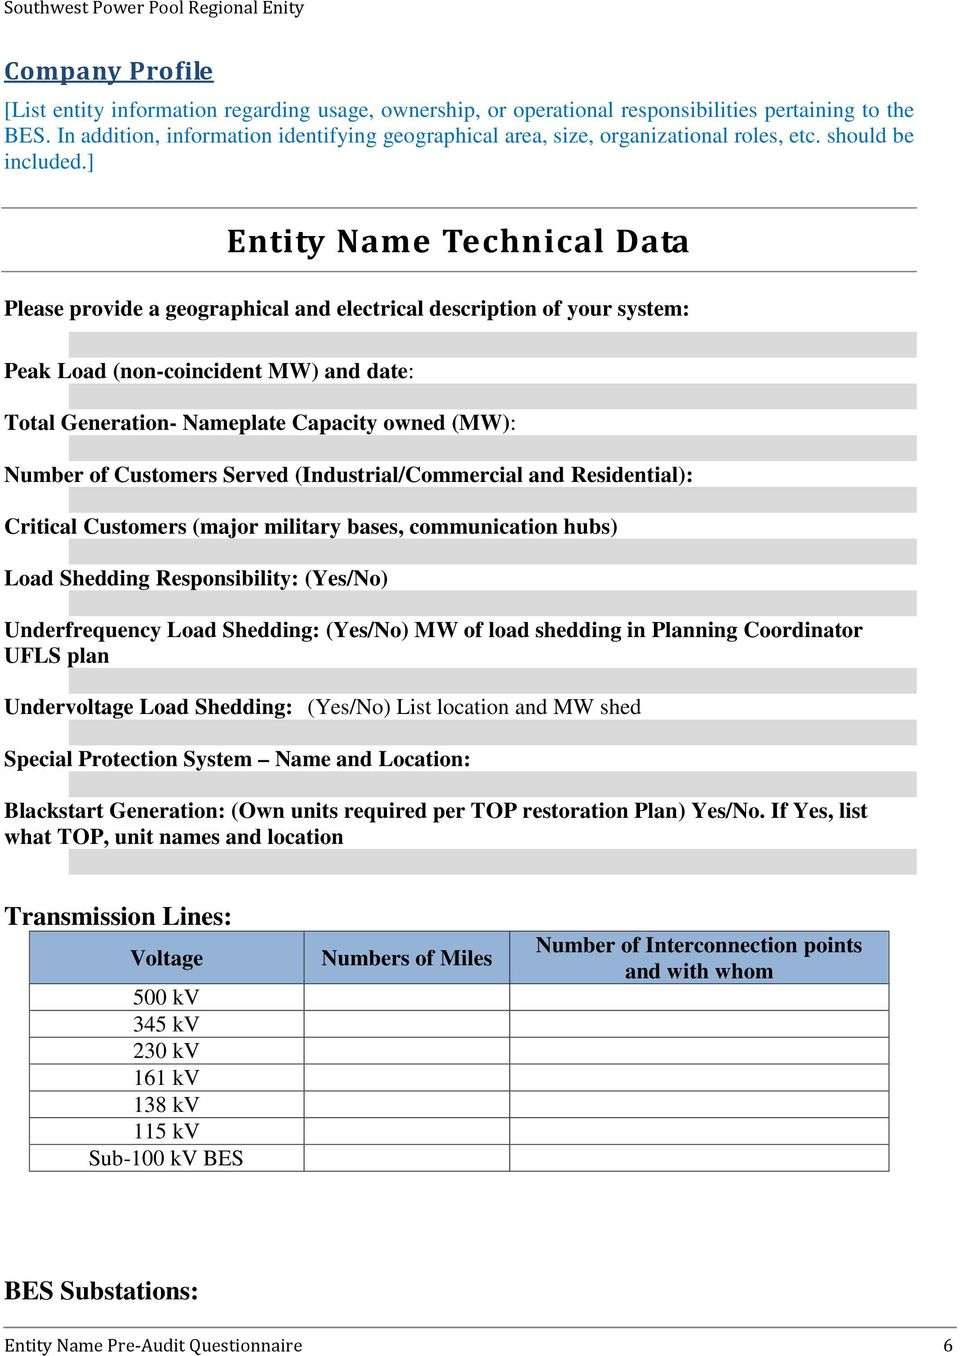 ] Entity Name Technical Data Please provide a geographical and electrical description of your system: Peak Load (non-coincident MW) and date: Total Generation- Nameplate Capacity owned (MW): Number